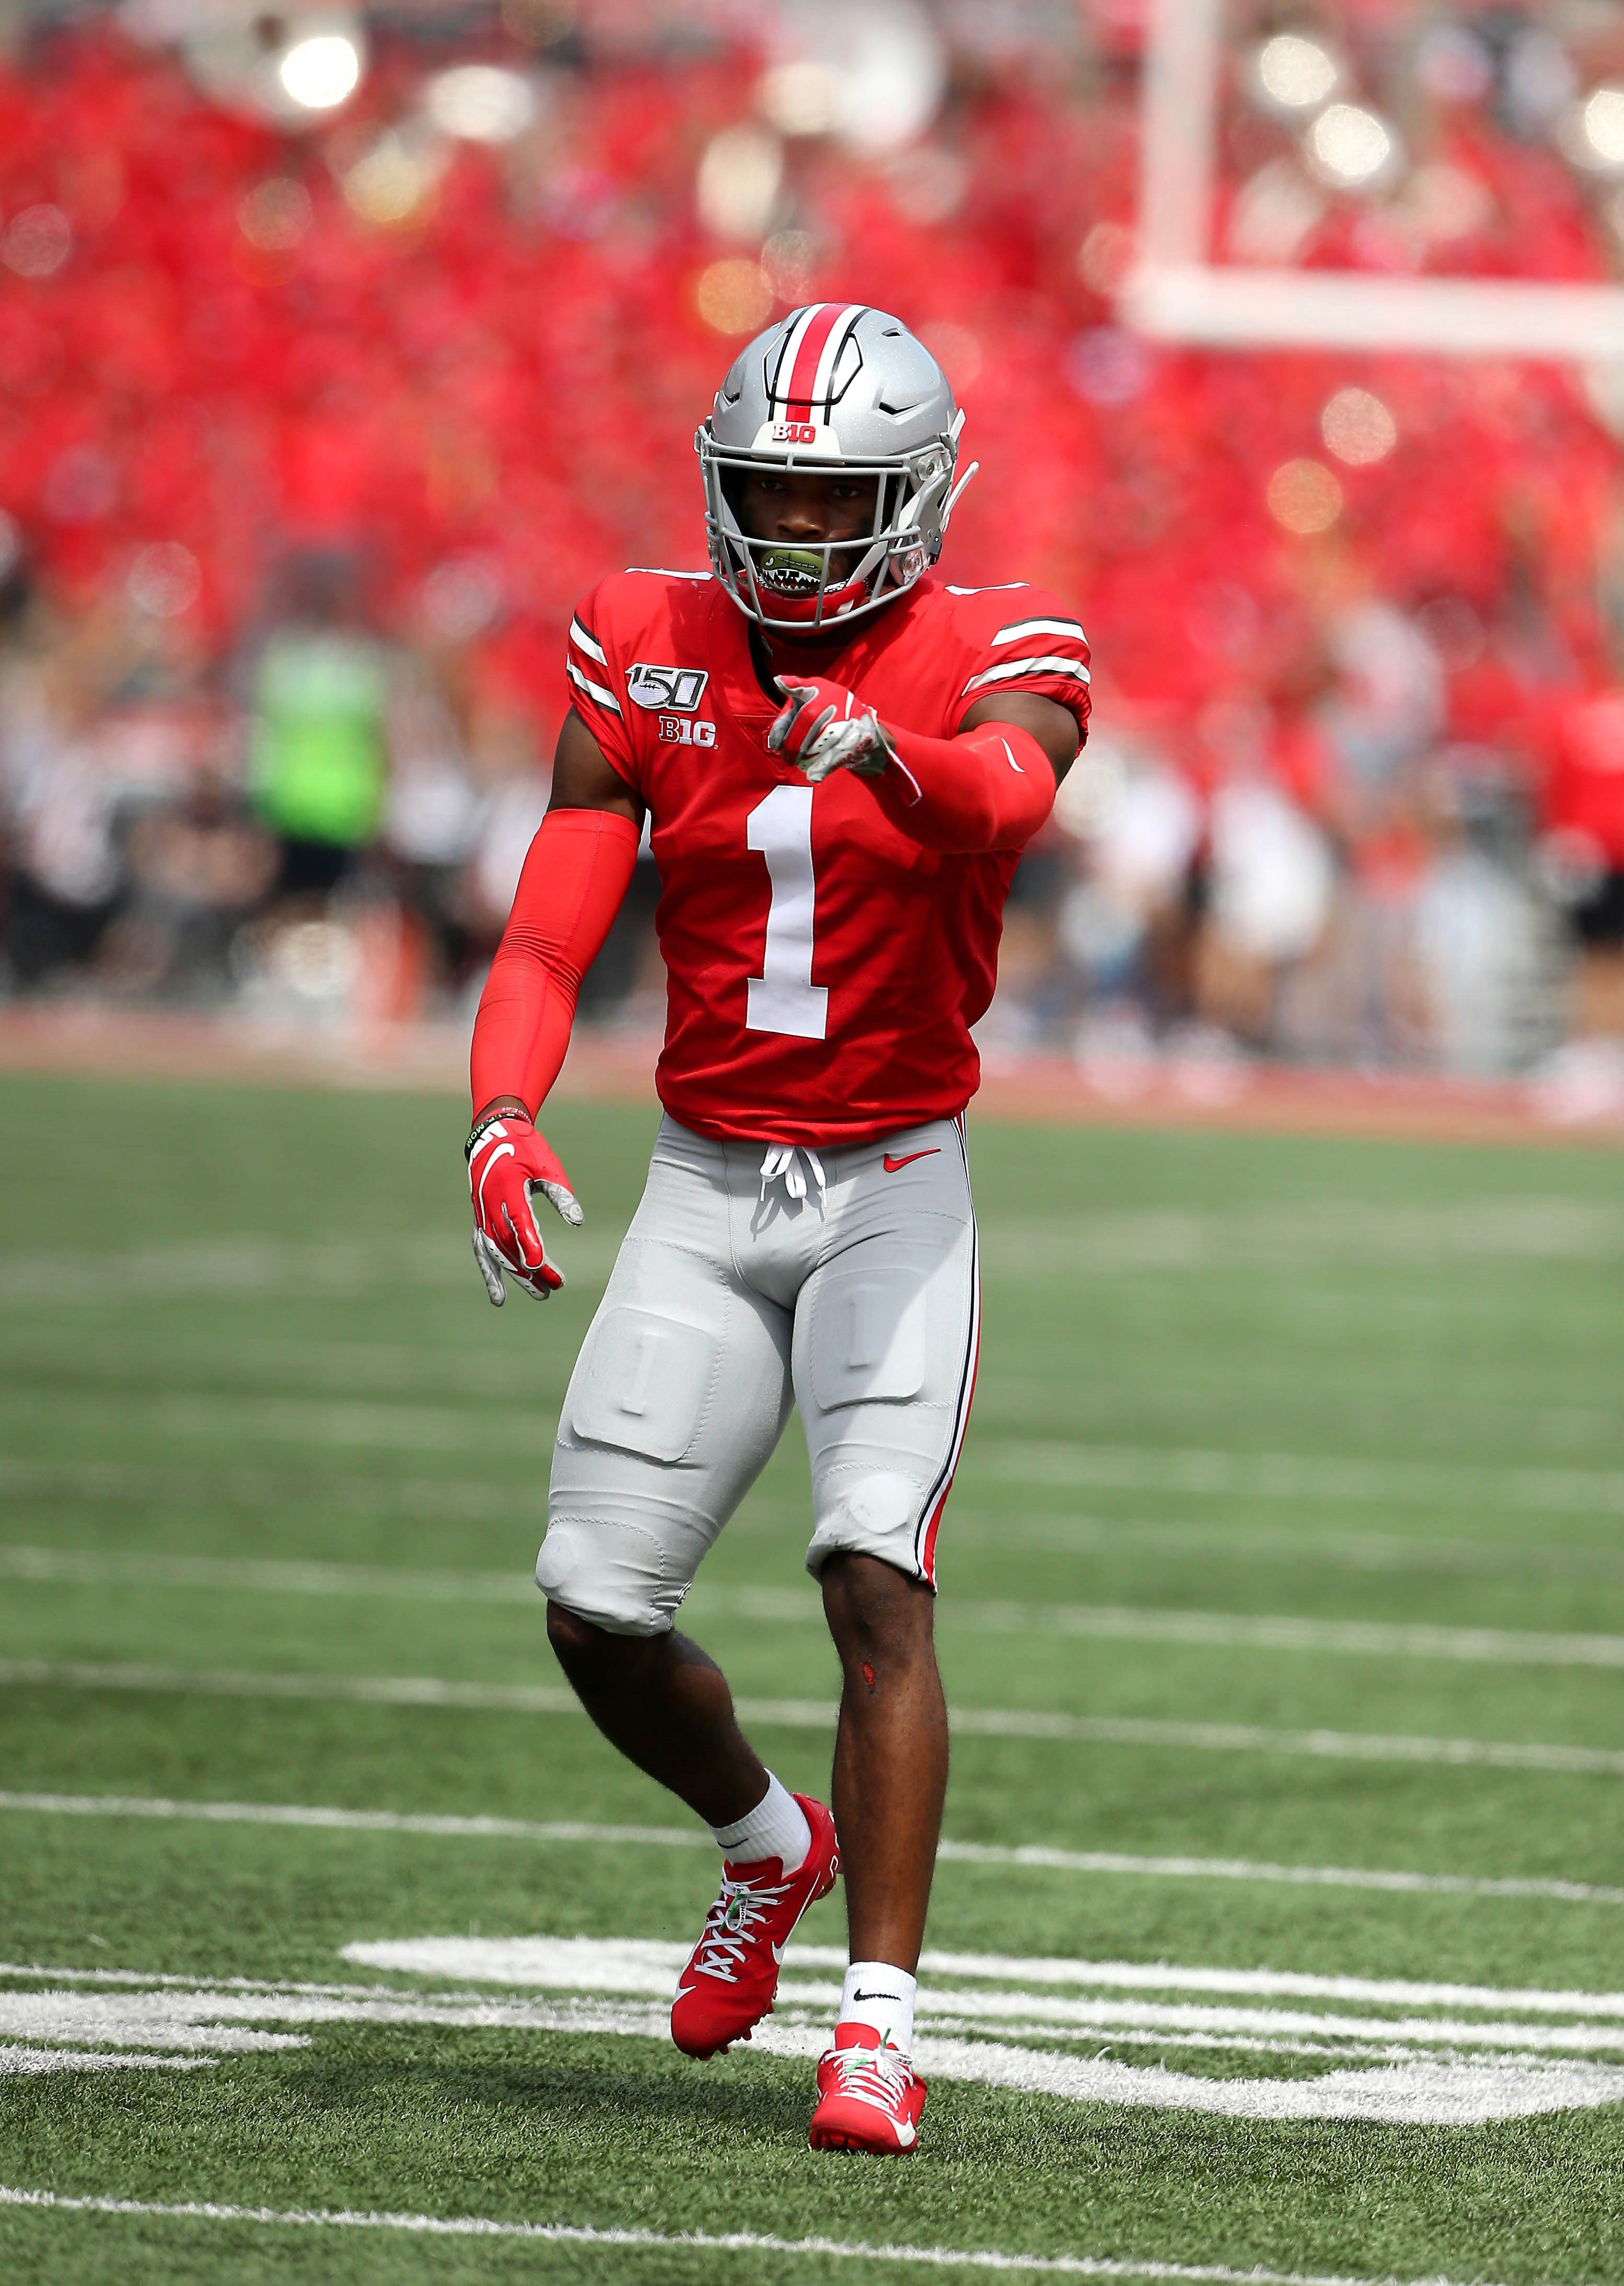 Can Ohio State Win CFB playoff? via PhillyWhat Ohio